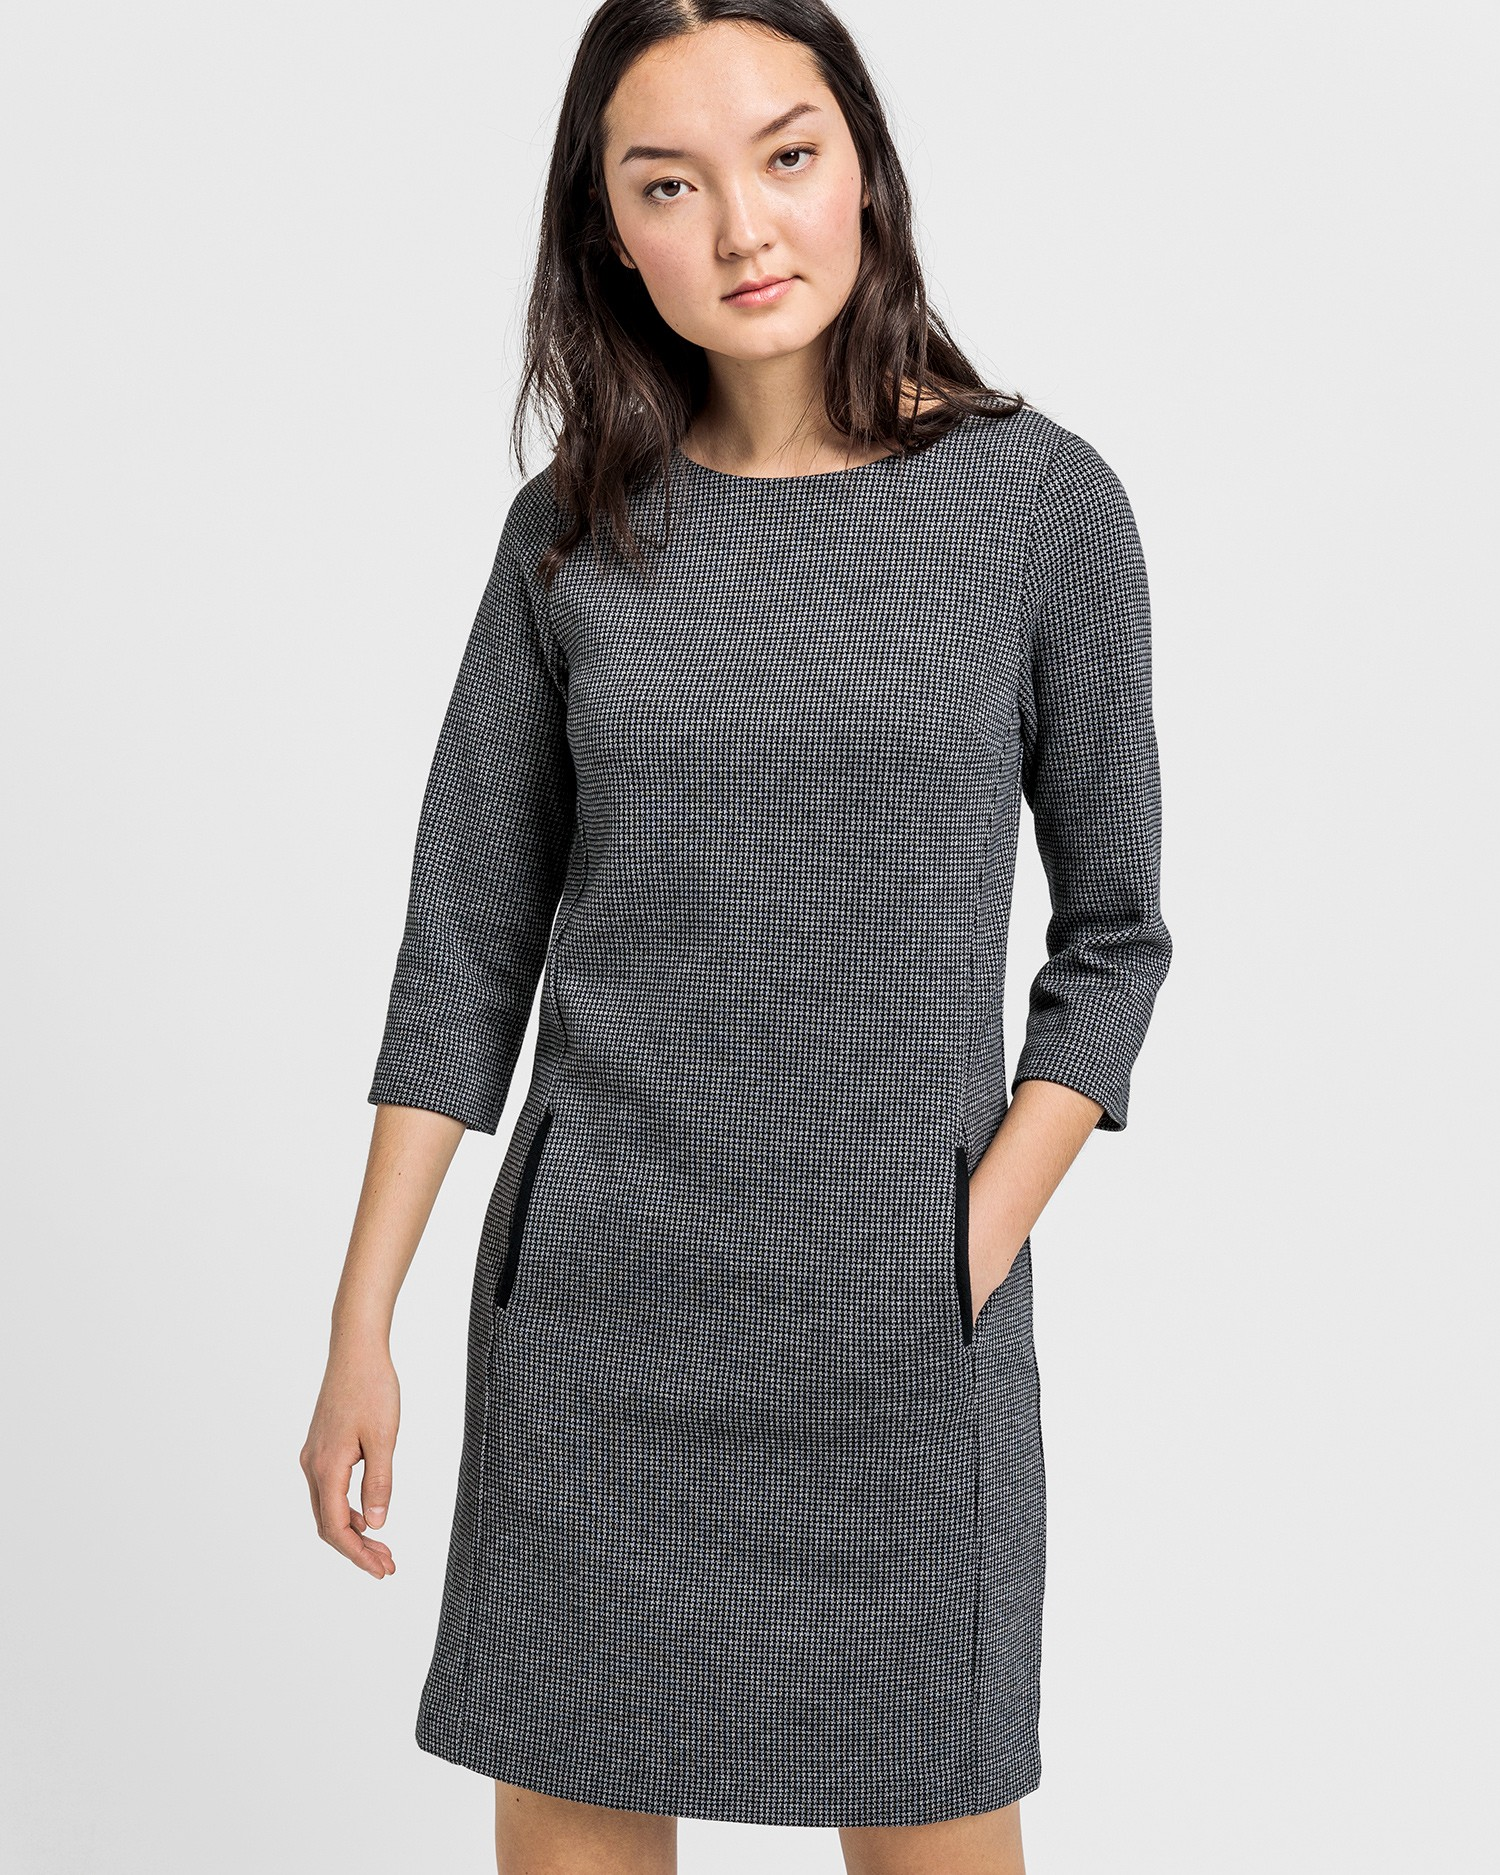 GANT Women's Dogtooth Jersey Dress - 4501050